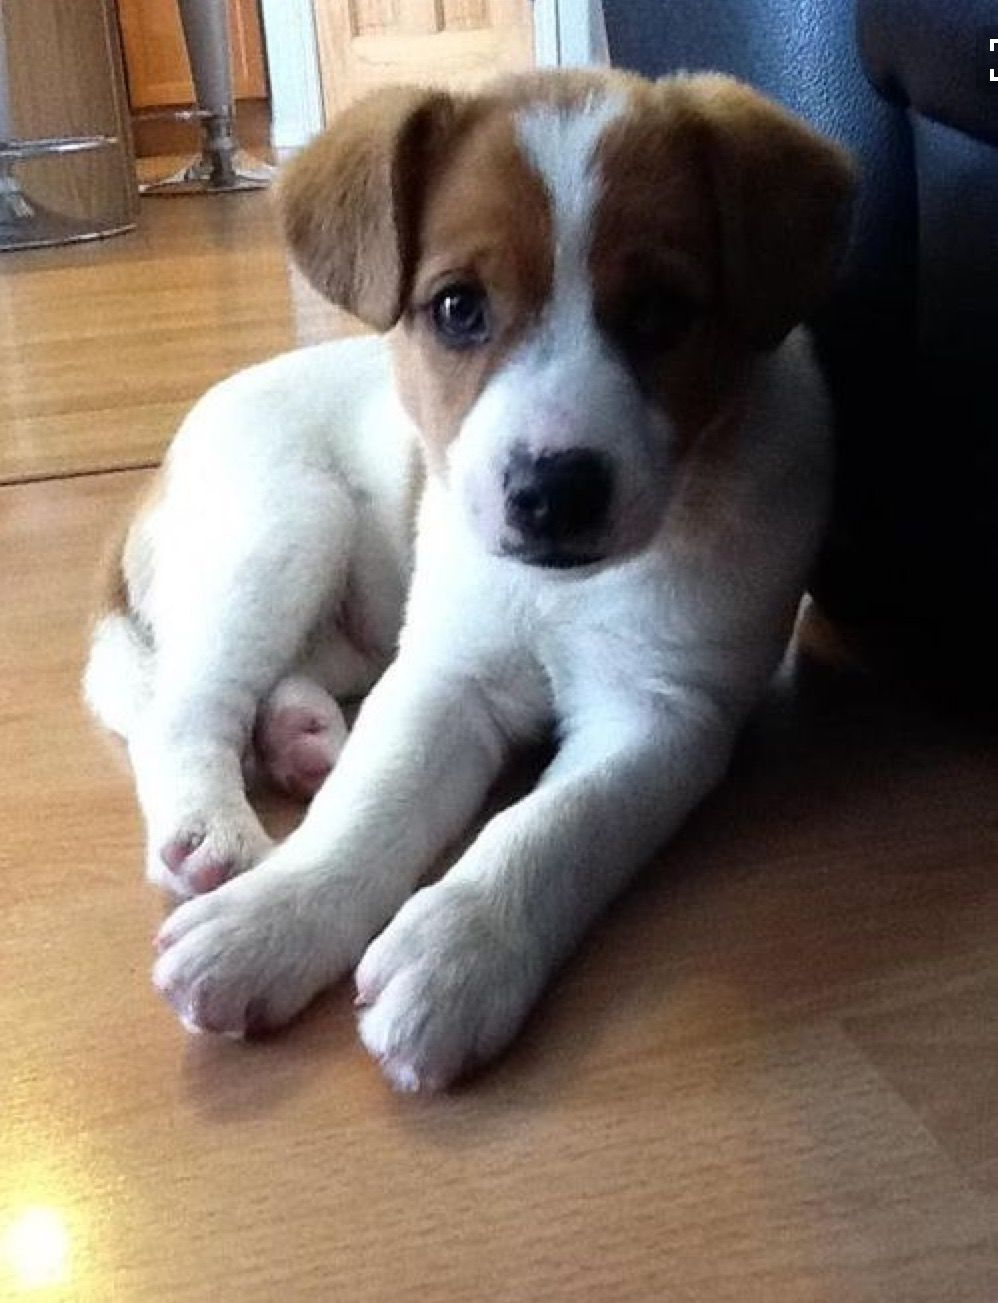 Pin By Susie Murphy On Jack Russel Jack Russell Puppies Jack Russell Dogs